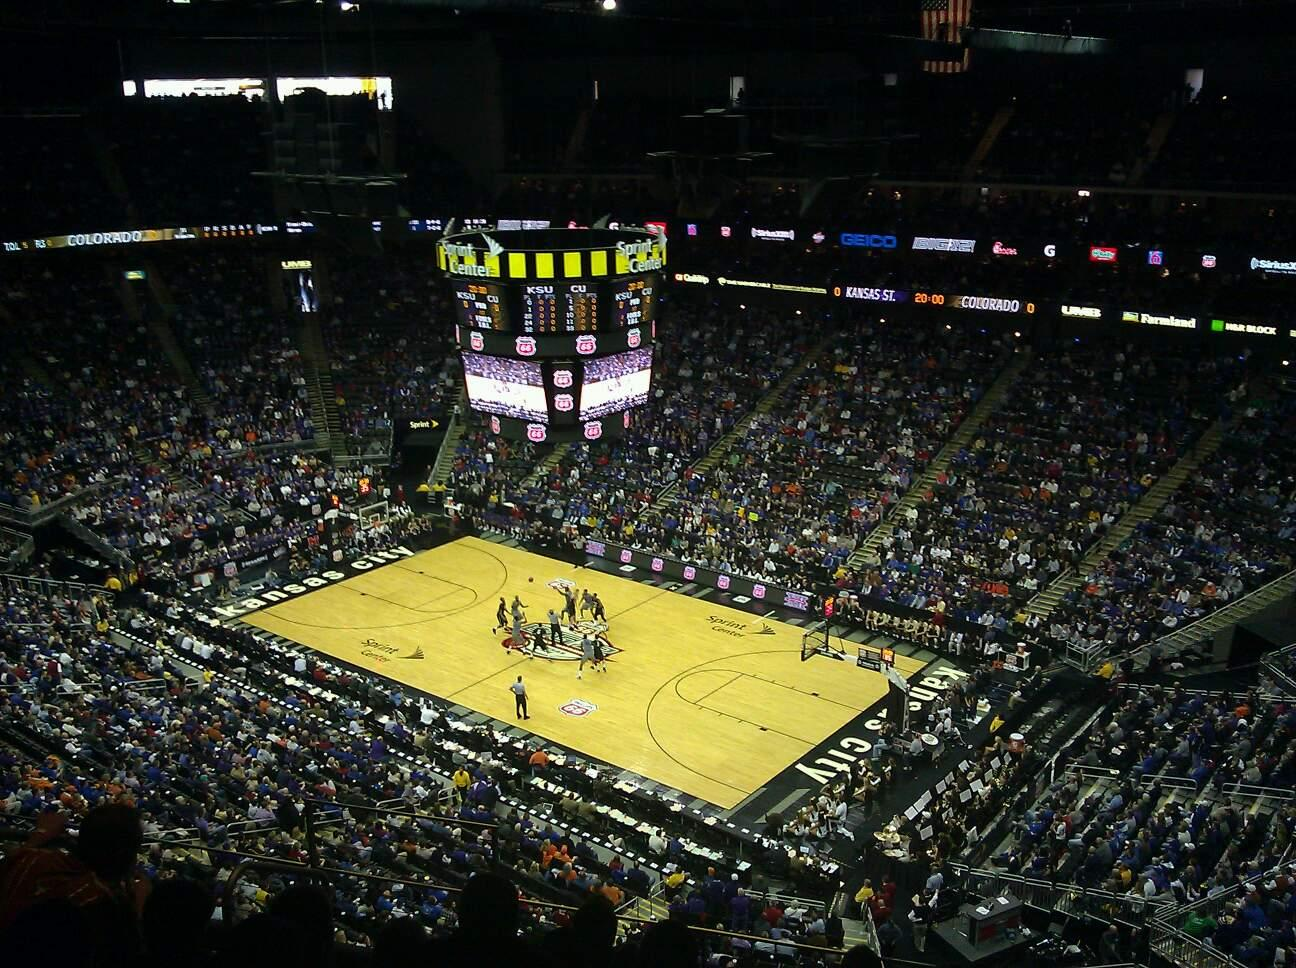 Sprint Center Section 221 Row 8 Seat 6